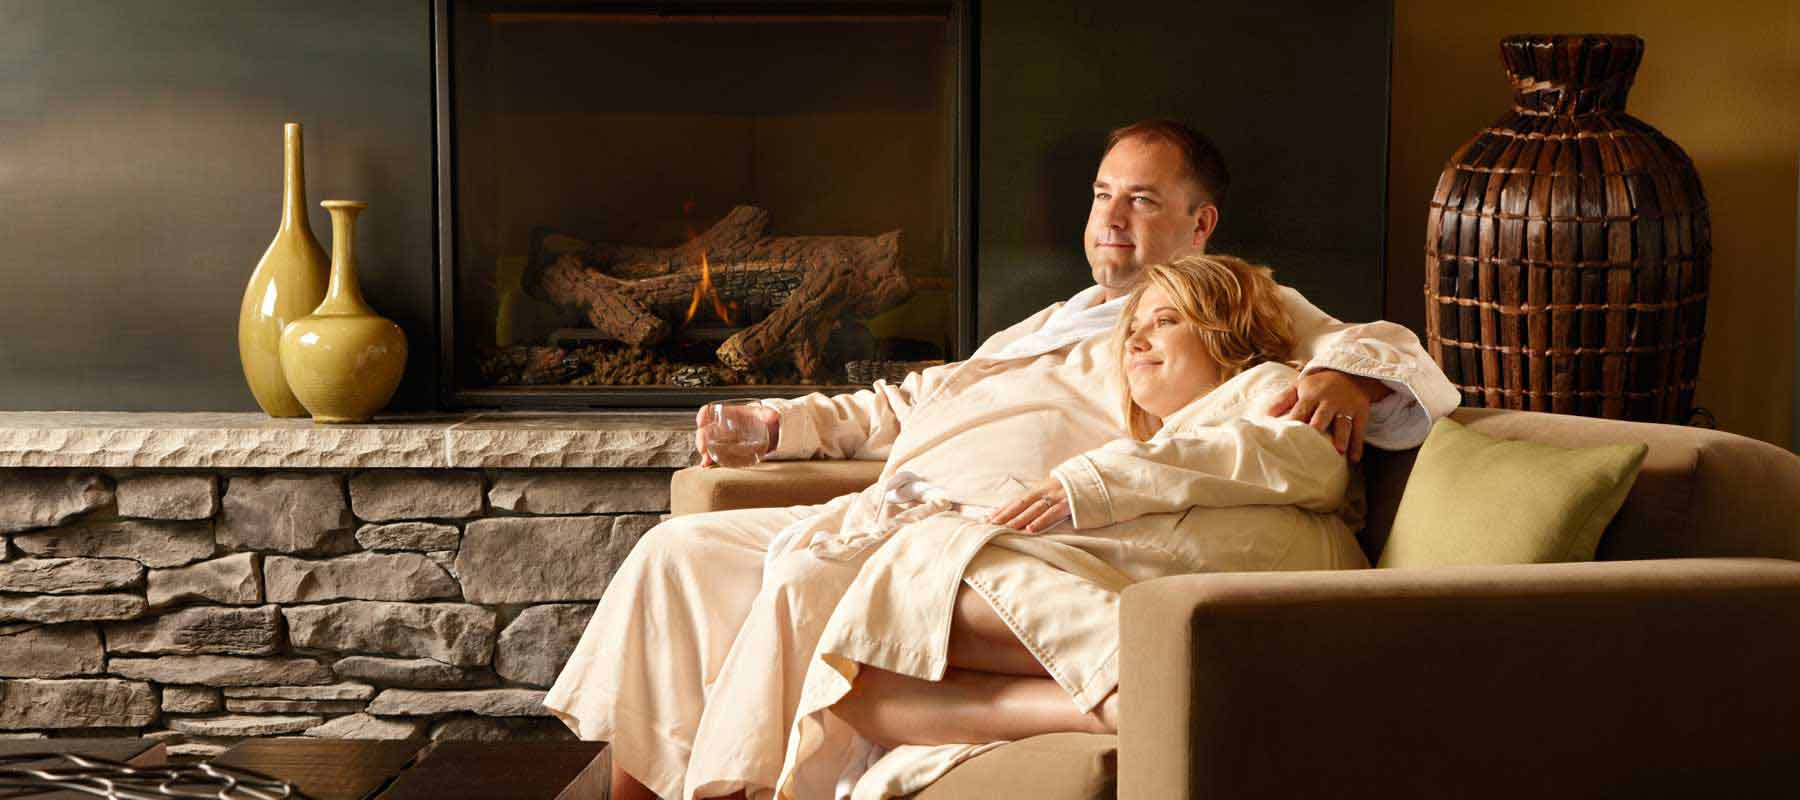 Couple in Relaxation Room